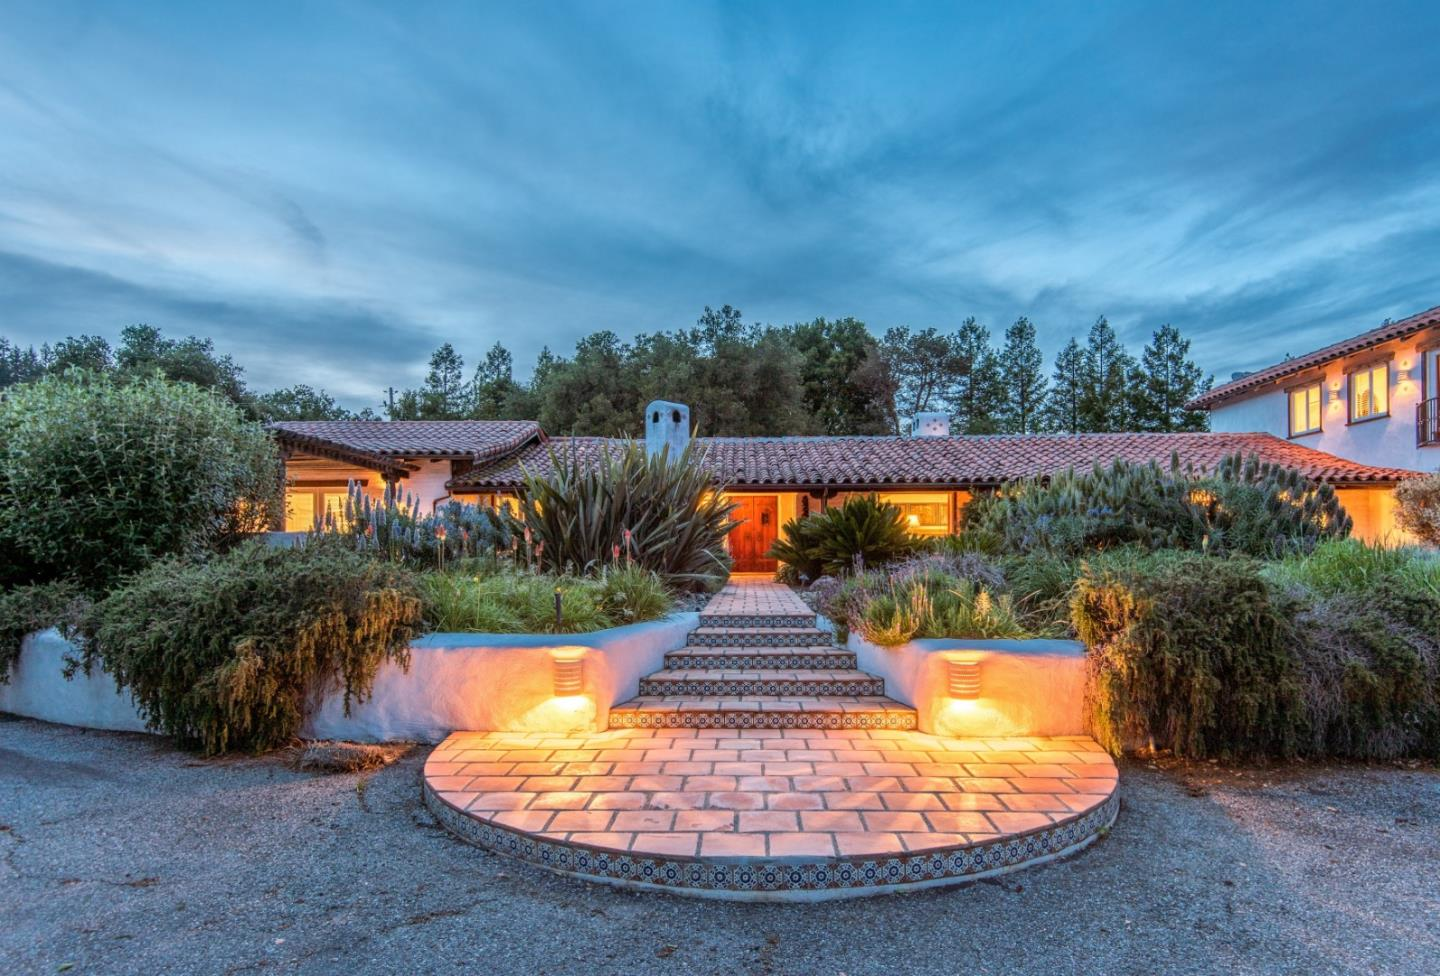 Just five minutes to downtown Los Gatos and only a half mile up Bear Creek Road. Natural privacy emanates from this one of a kind Spanish Los Gatos estate, offering a captivating interplay between nature and structure that few residences manage to achieve. Imagine the very best of everything presented in a singular setting-where the finest materials combine with dazzling artistry and craftsmanship to create an environment of textures, patterns, and colors that delight the spirit. Casa de los Suenos is that place. This spectacular estate is a triumph of architectural design and exceptional craftsmanship that unfolds on approximately 2.5 glorious acres in the hills of Los Gatos. Culinary kitchen with Custom wood cabinets and top of the line appliances. A Separate guest house and separate studio perfect for home office, gym, or art studio.  Approximately a  1400 square foot over sized four car garage. A self contained attached fully equipped apartment. Only minutes to downtown Los Gatos.